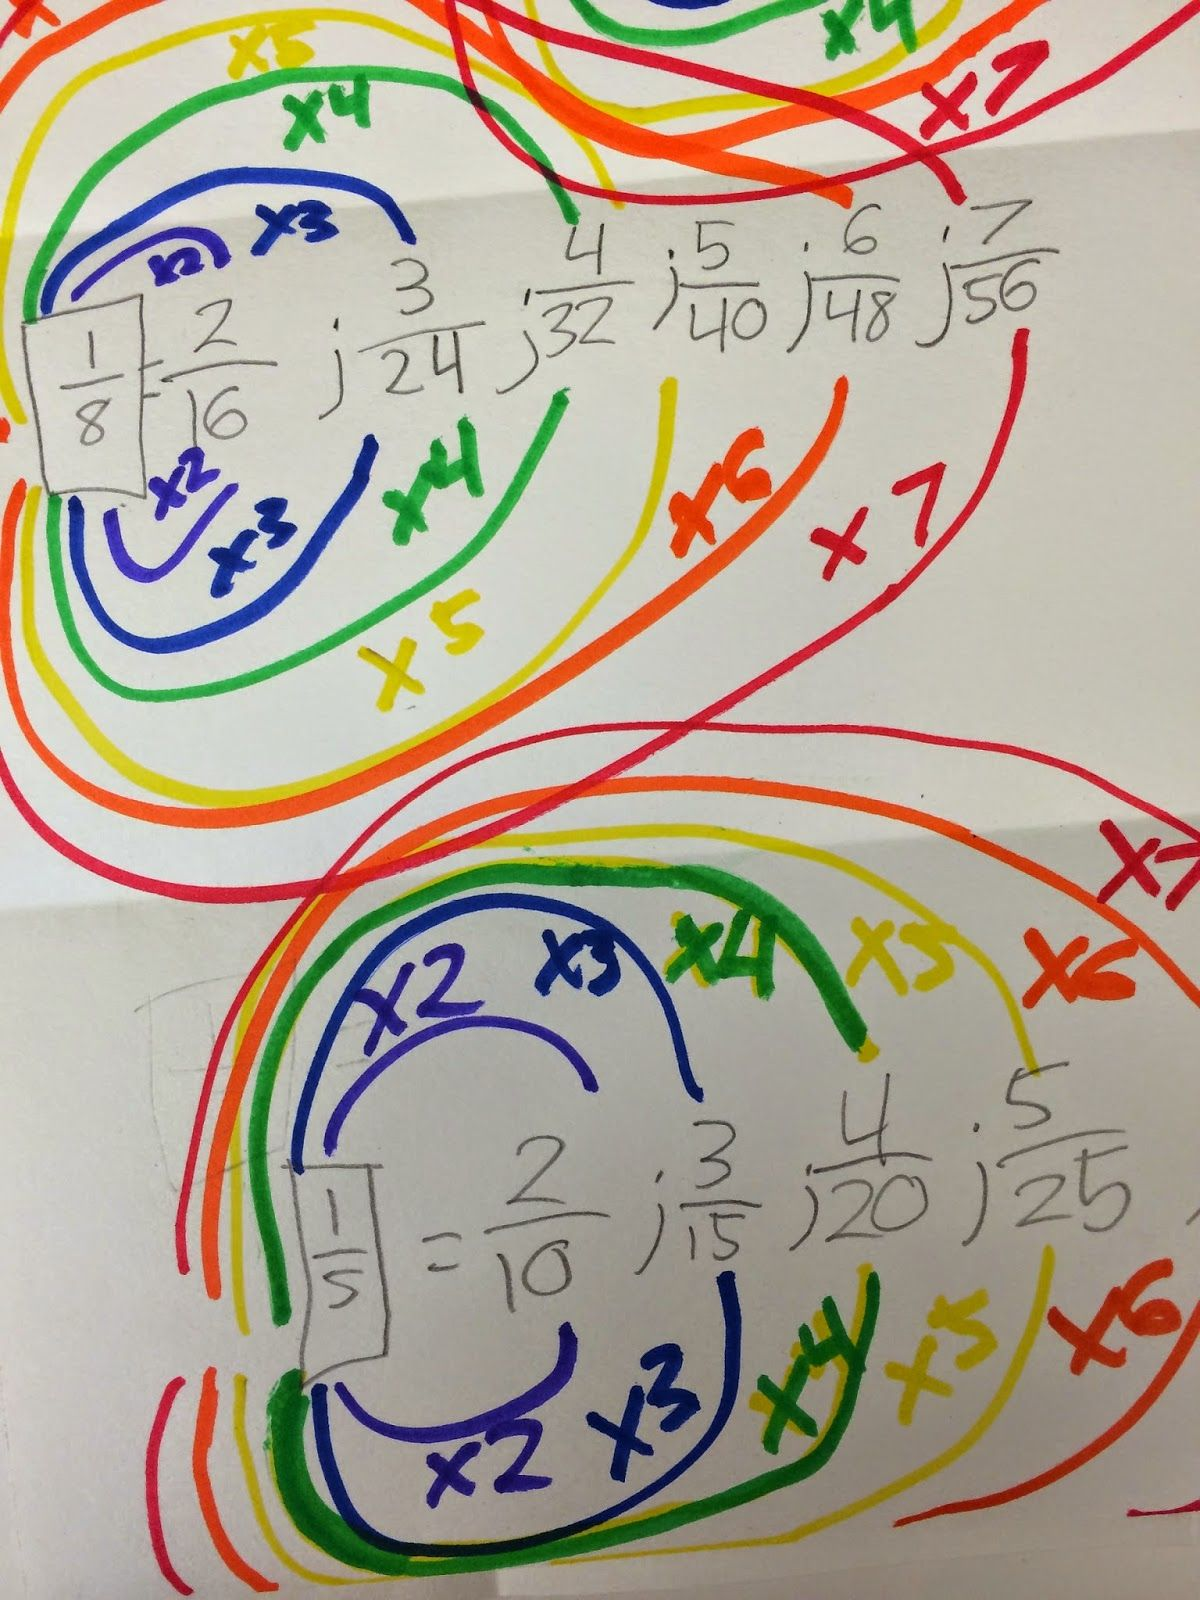 Equivalent Fraction Rainbows For St Patty S Day With